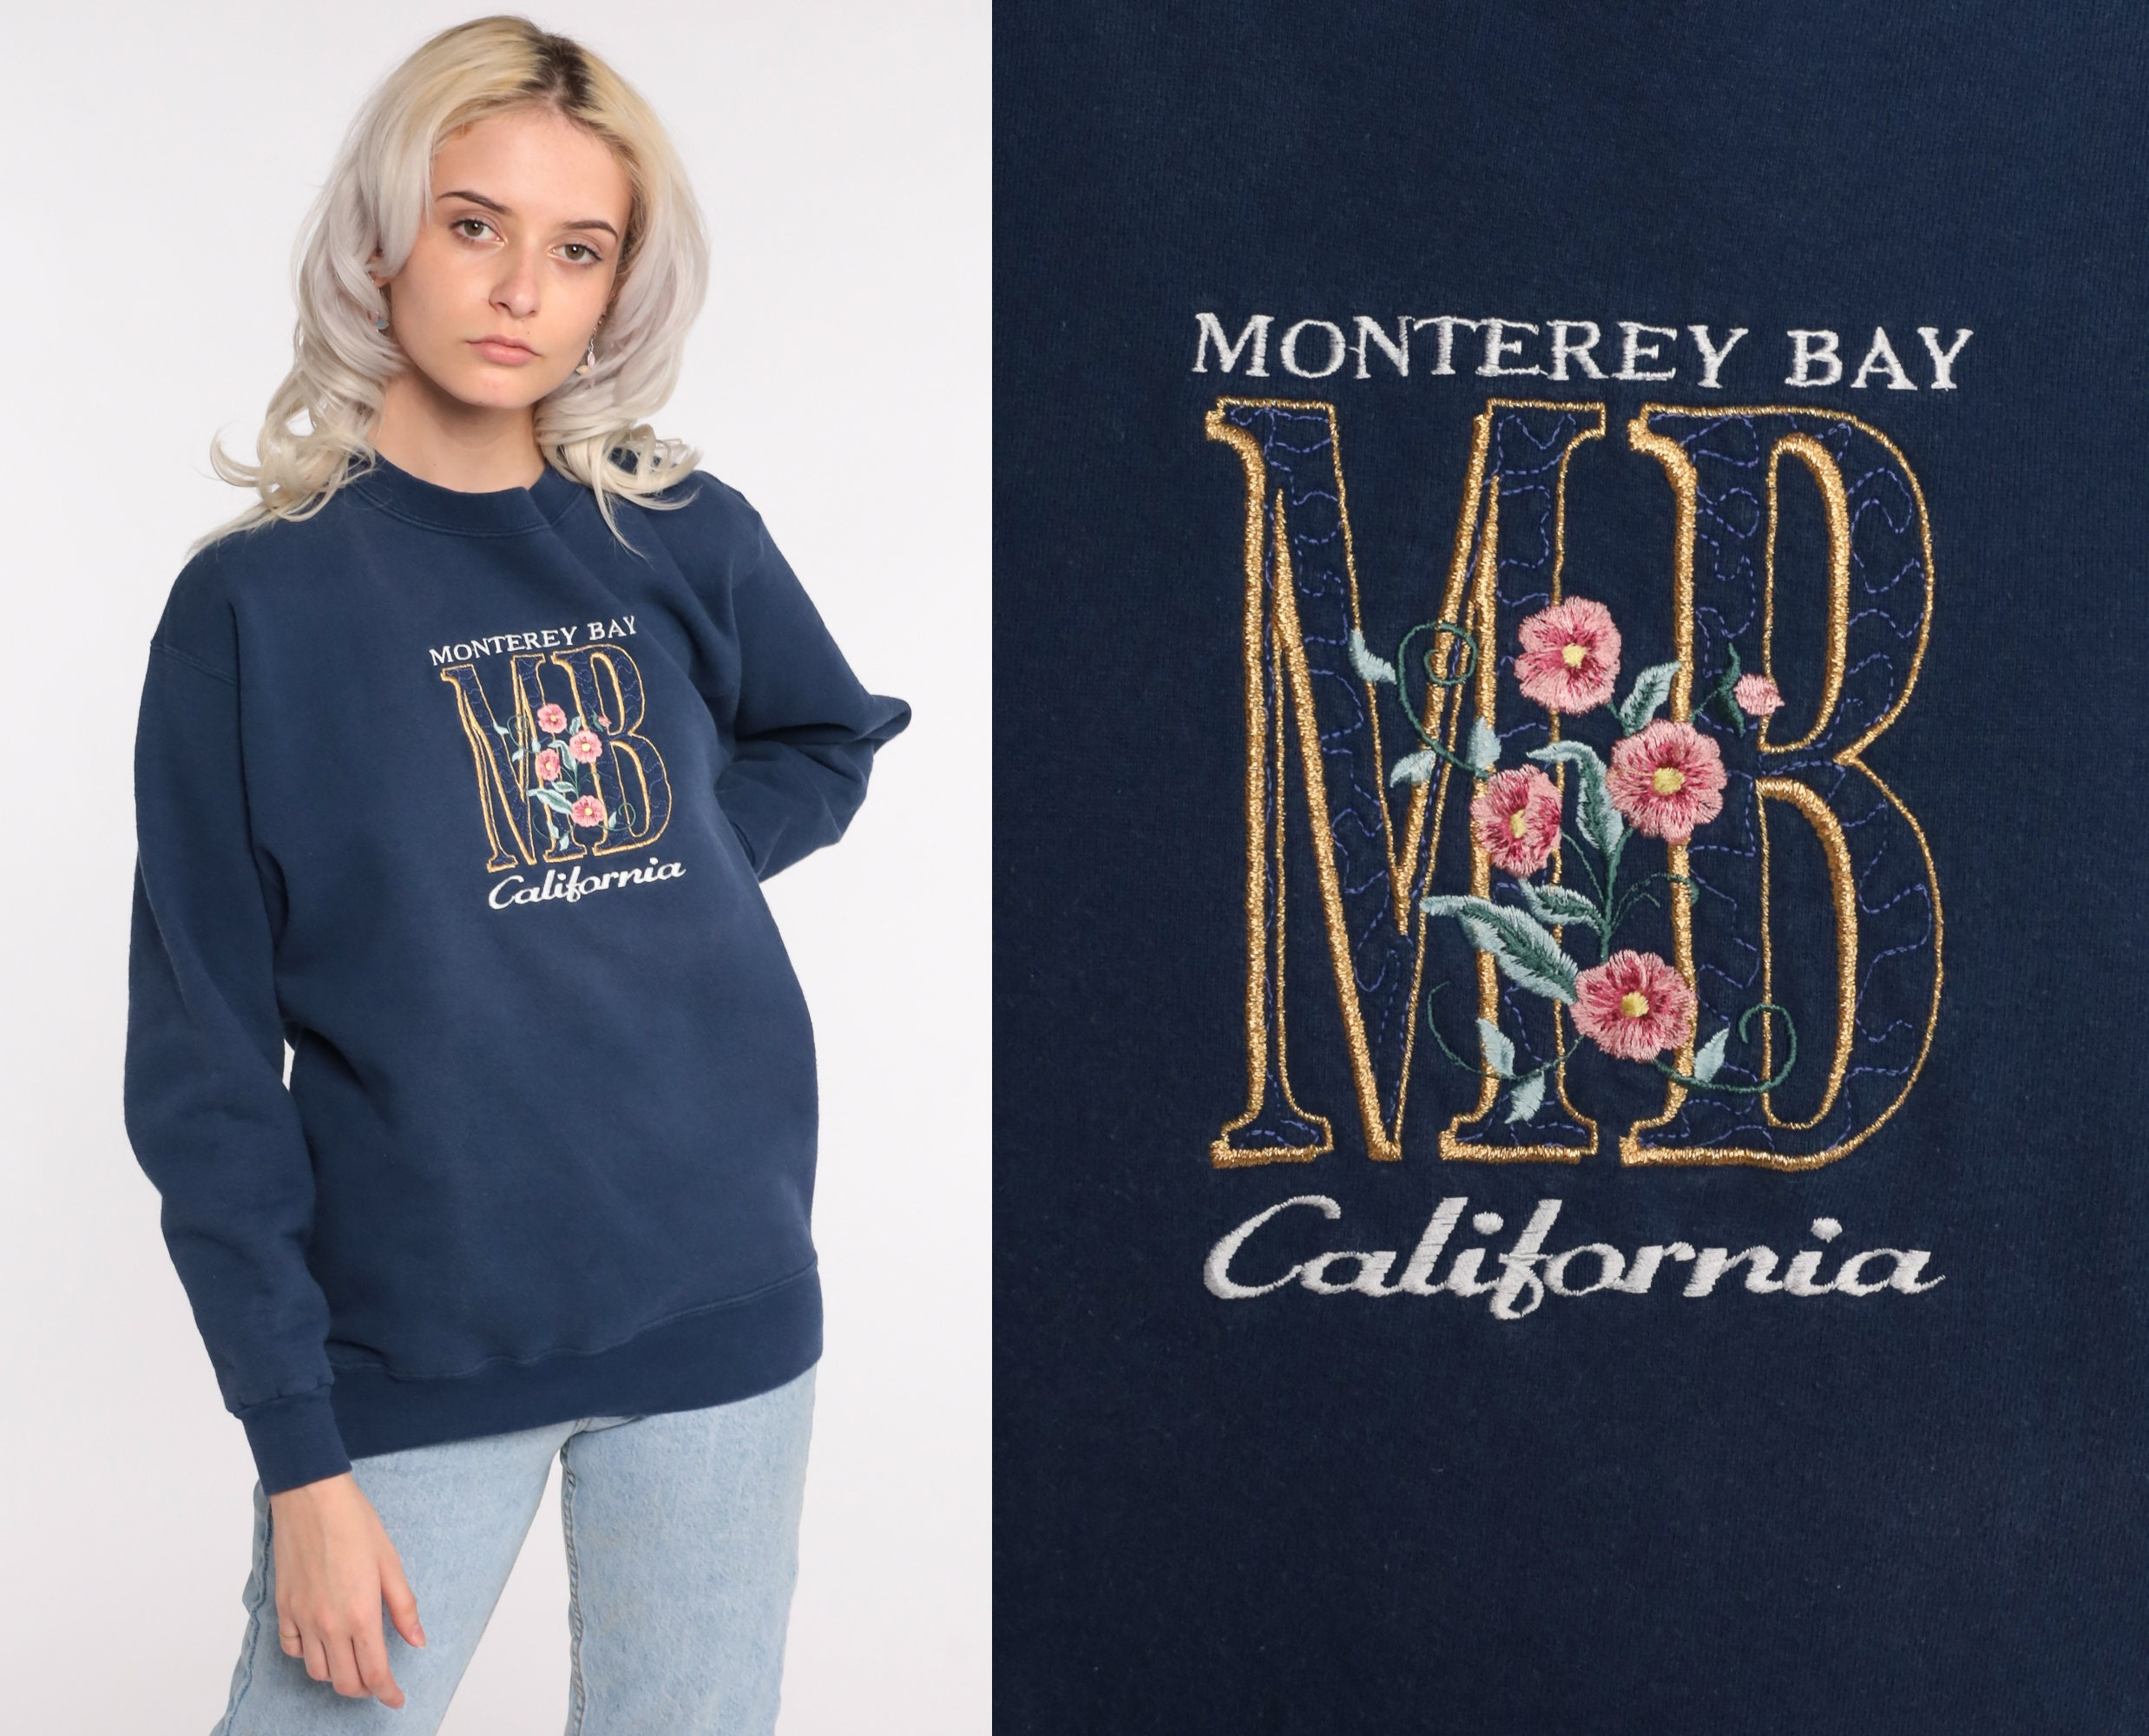 80s Tops, Shirts, T-shirts, Blouse   90s T-shirts Monterey Bay Sweatshirt 80S Floral Embroidered Navy Blue Shirt California Pullover 1980S Graphic Vintage 90S Small Medium $55.00 AT vintagedancer.com